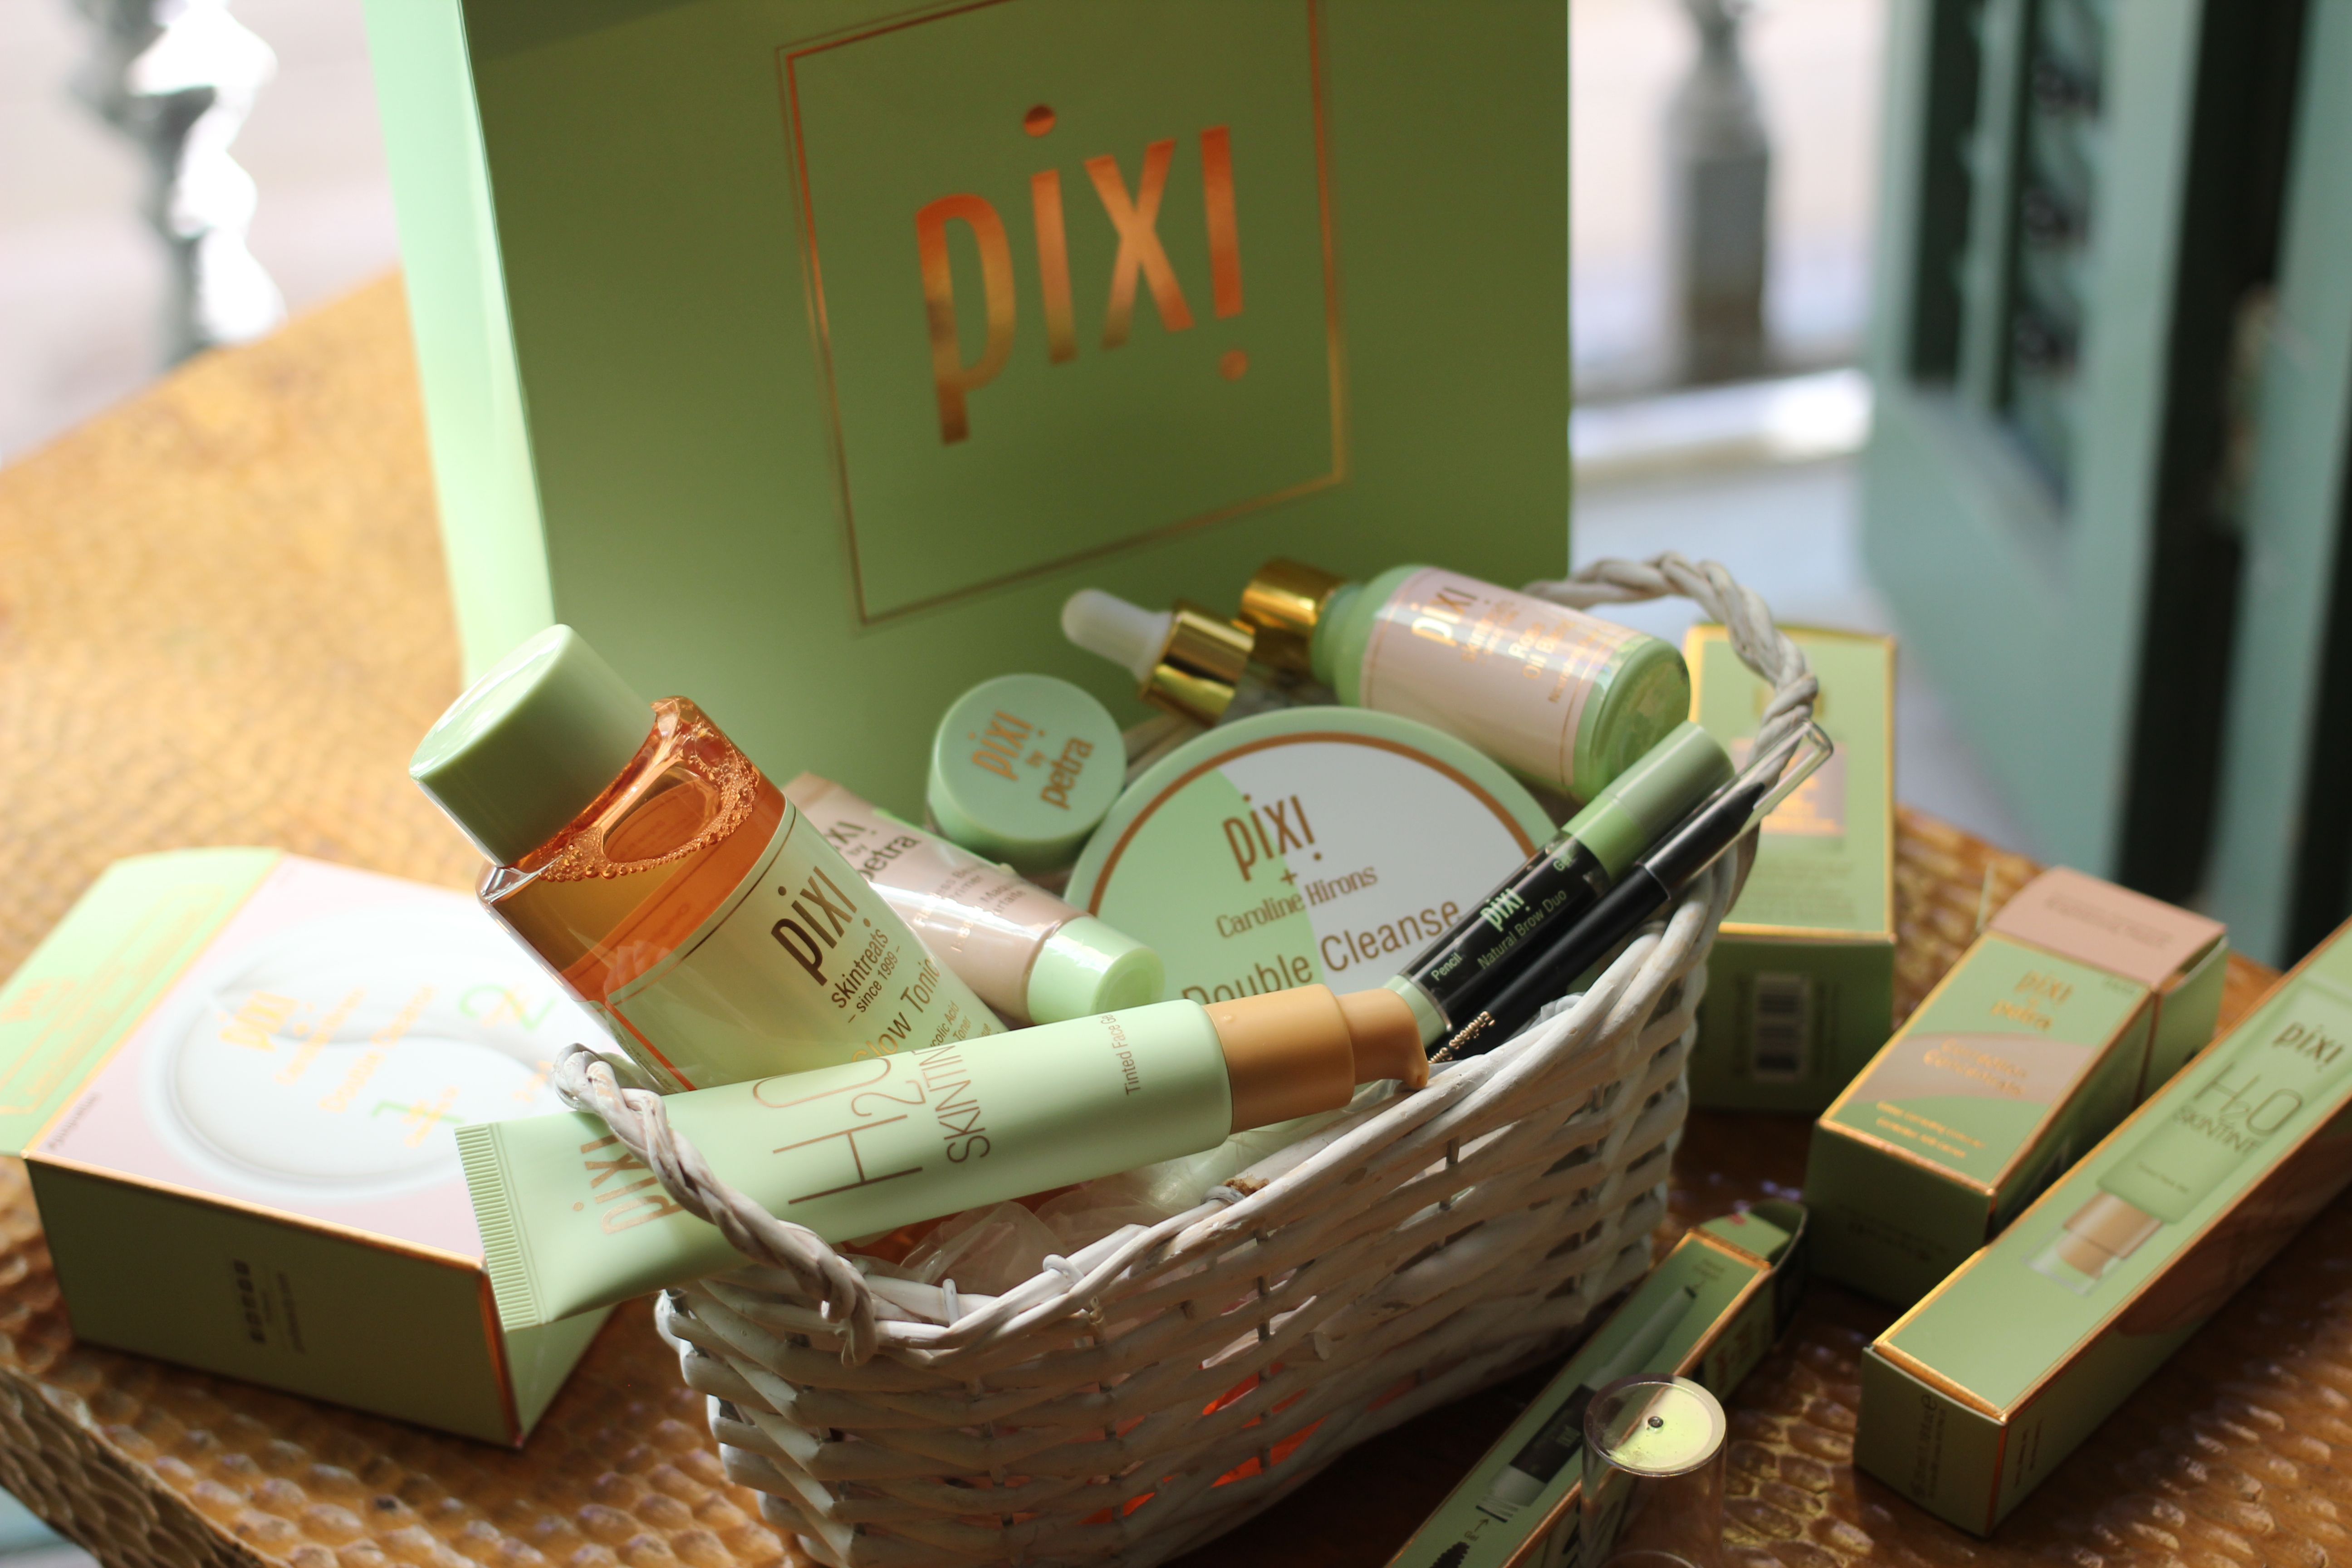 pixi beauty espana